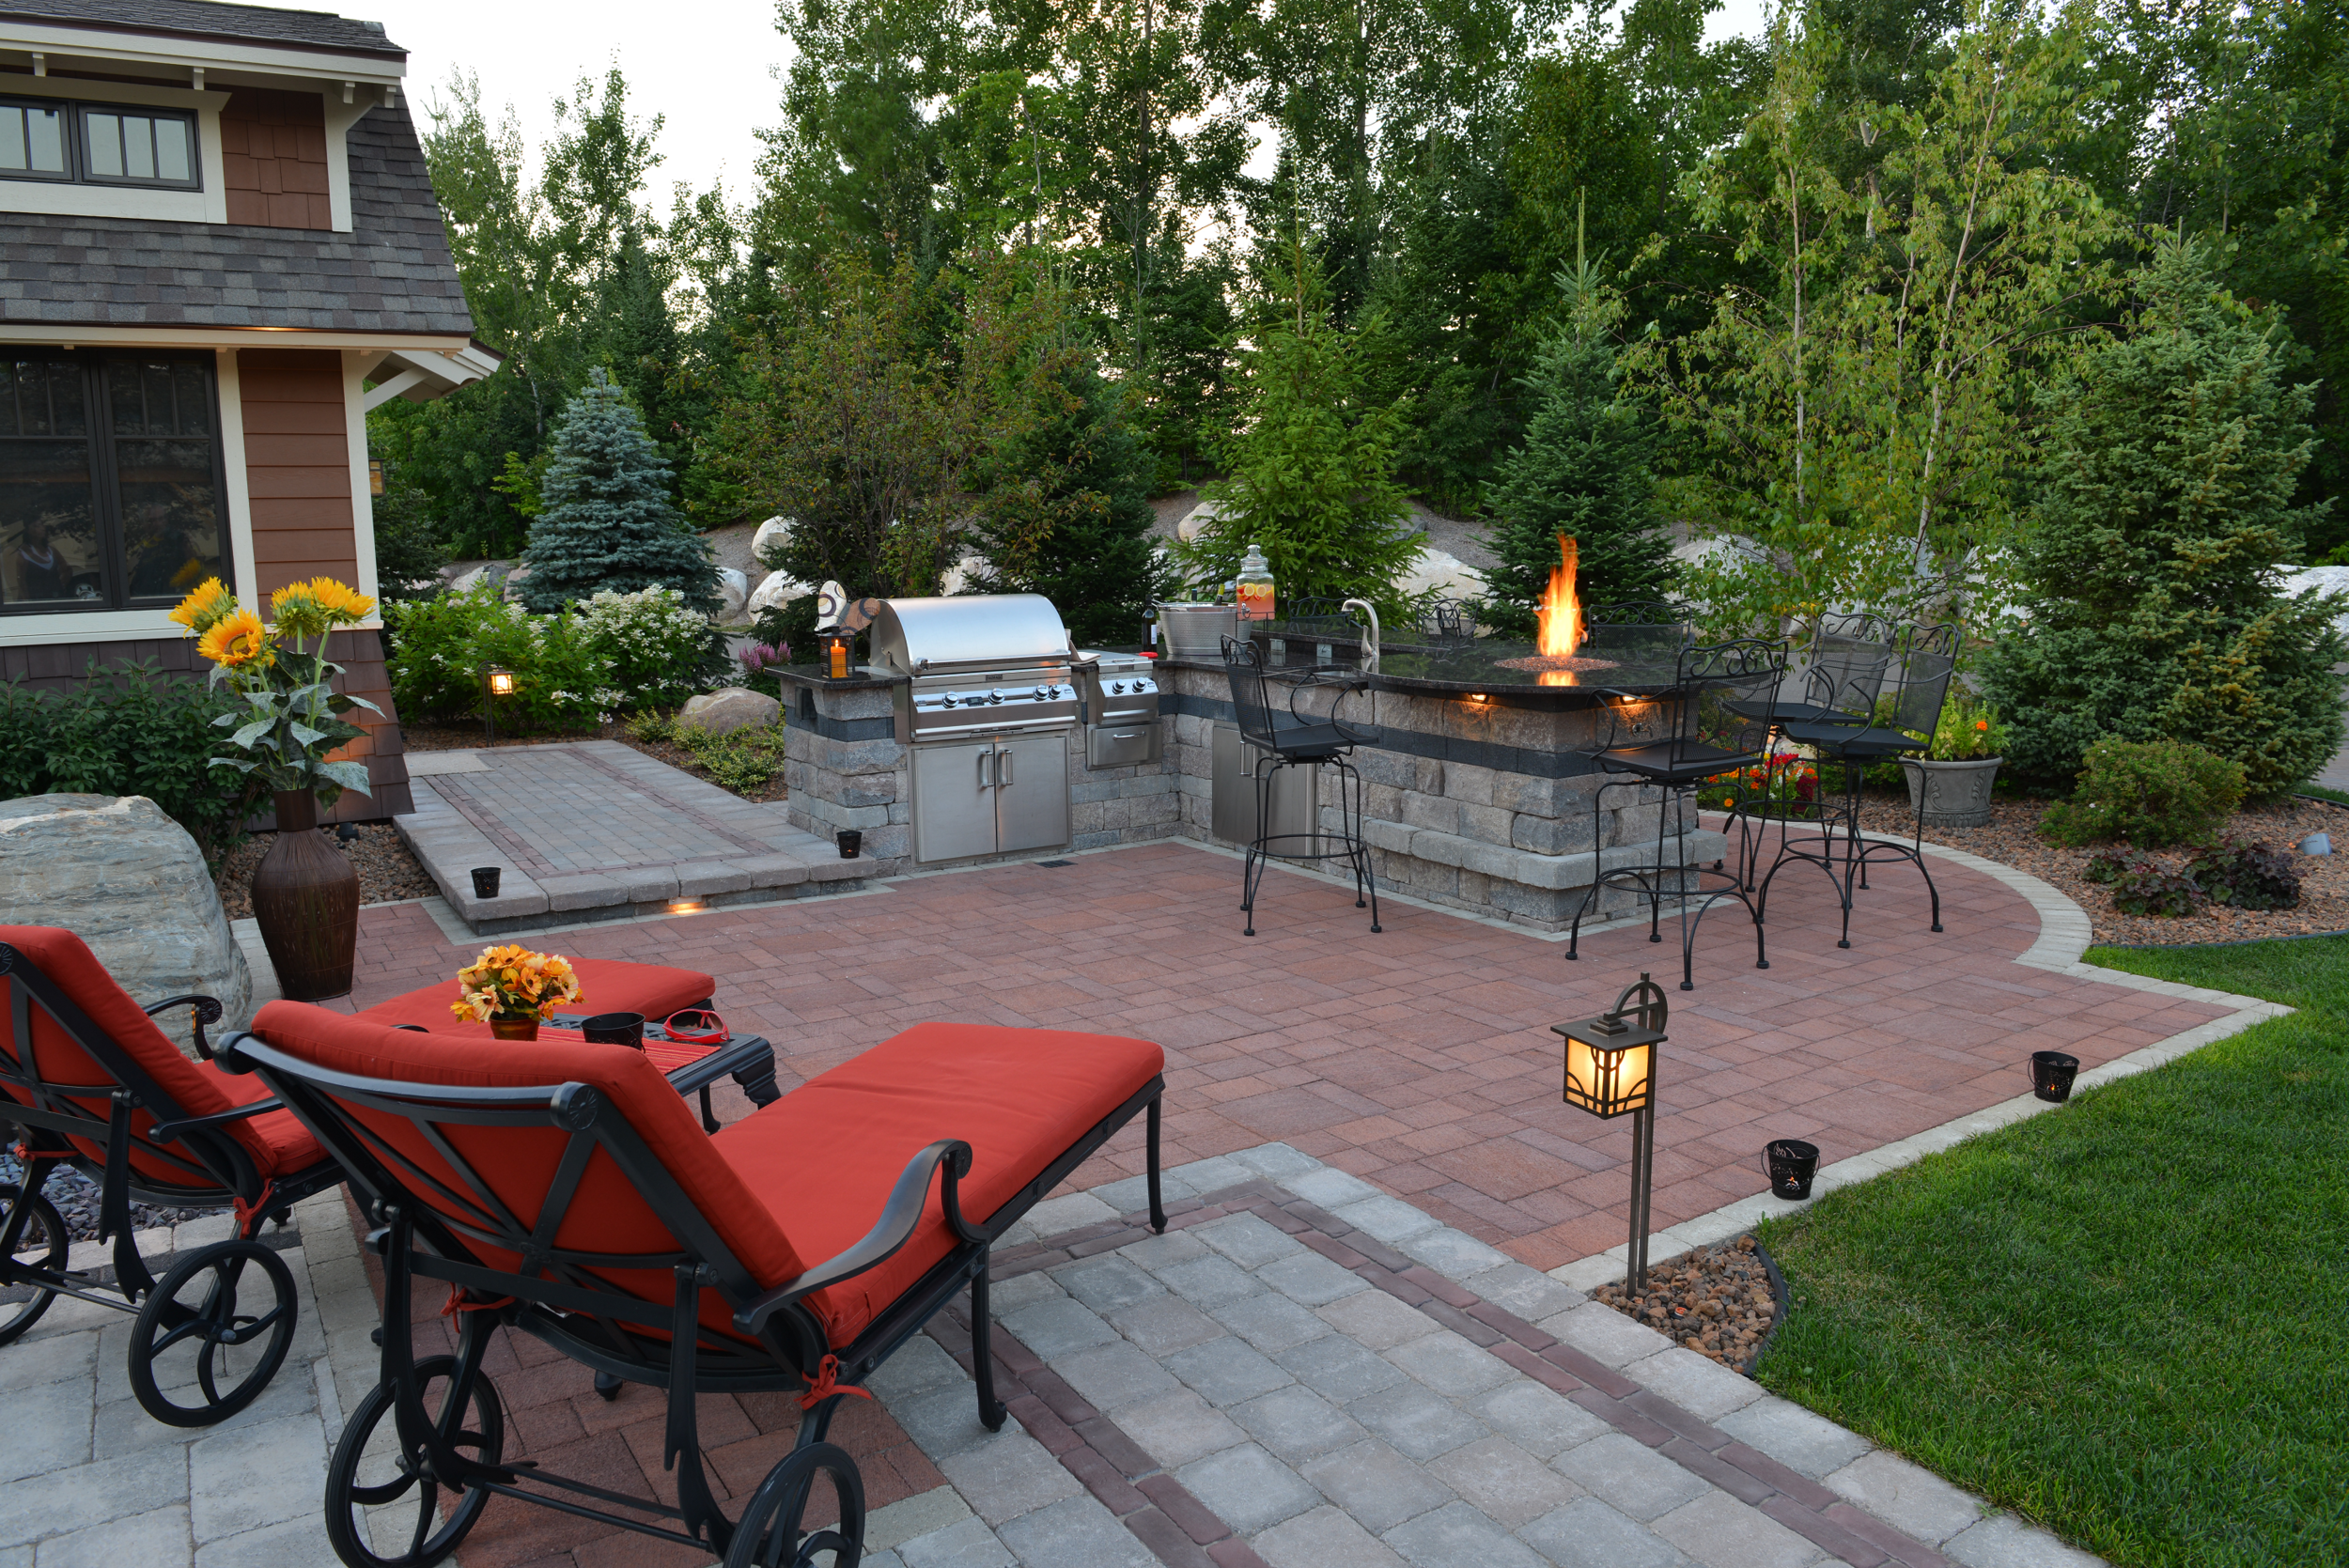 Landscaping companies with top landscape design in Macomb, MI